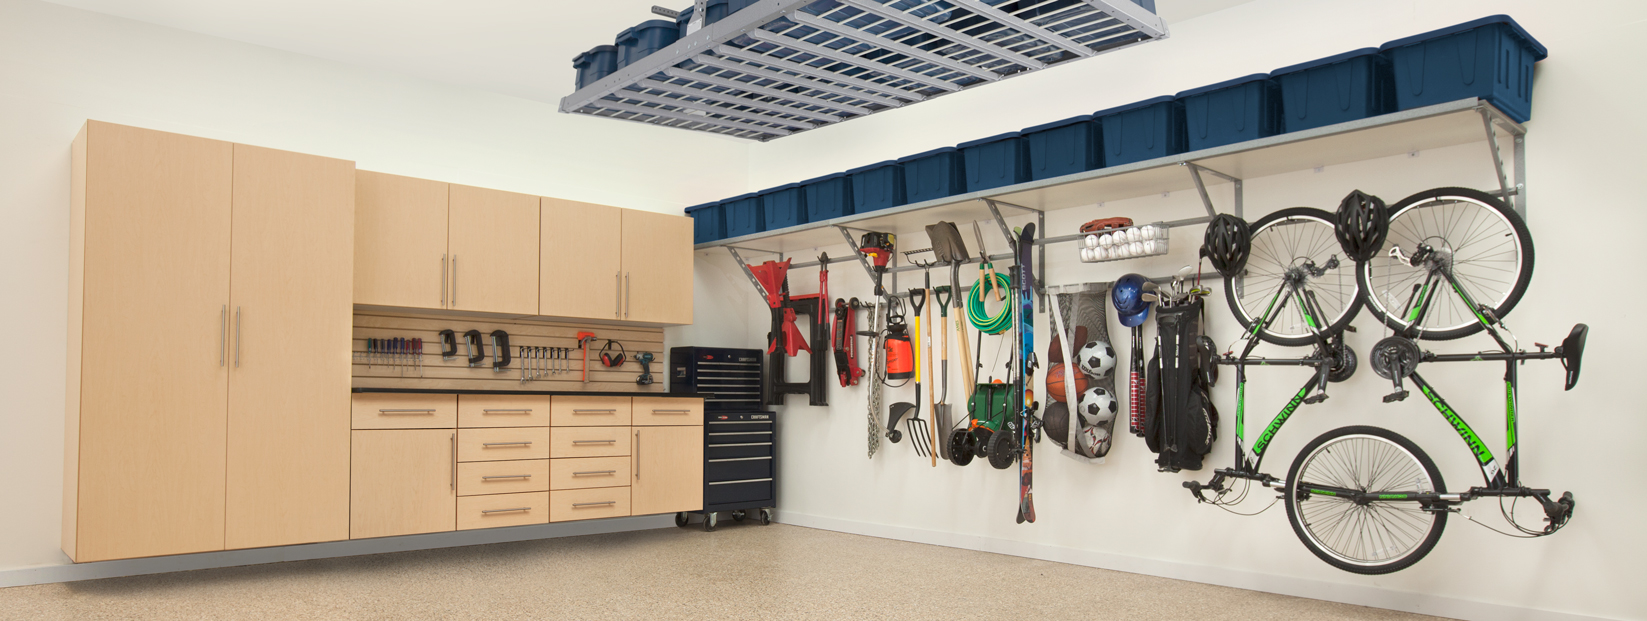 Garage Storage North Las Vegas